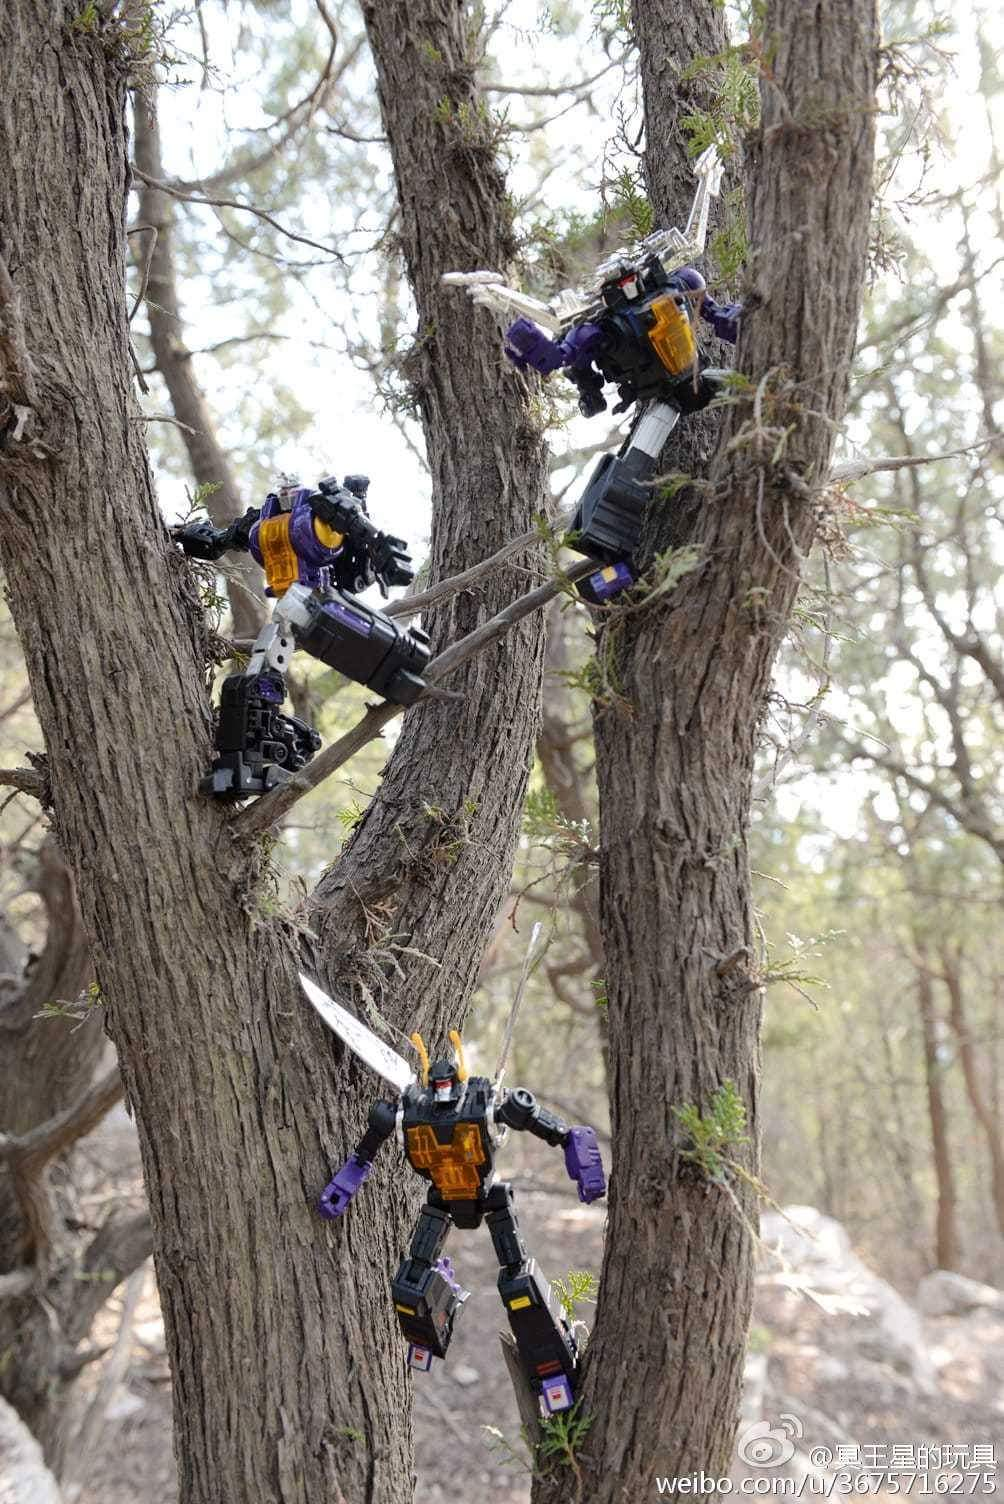 [Fanstoys] Produit Tiers - Jouet FT-12 Grenadier / FT-13 Mercenary / FT-14 Forager - aka Insecticons - Page 3 ClJnPG8V